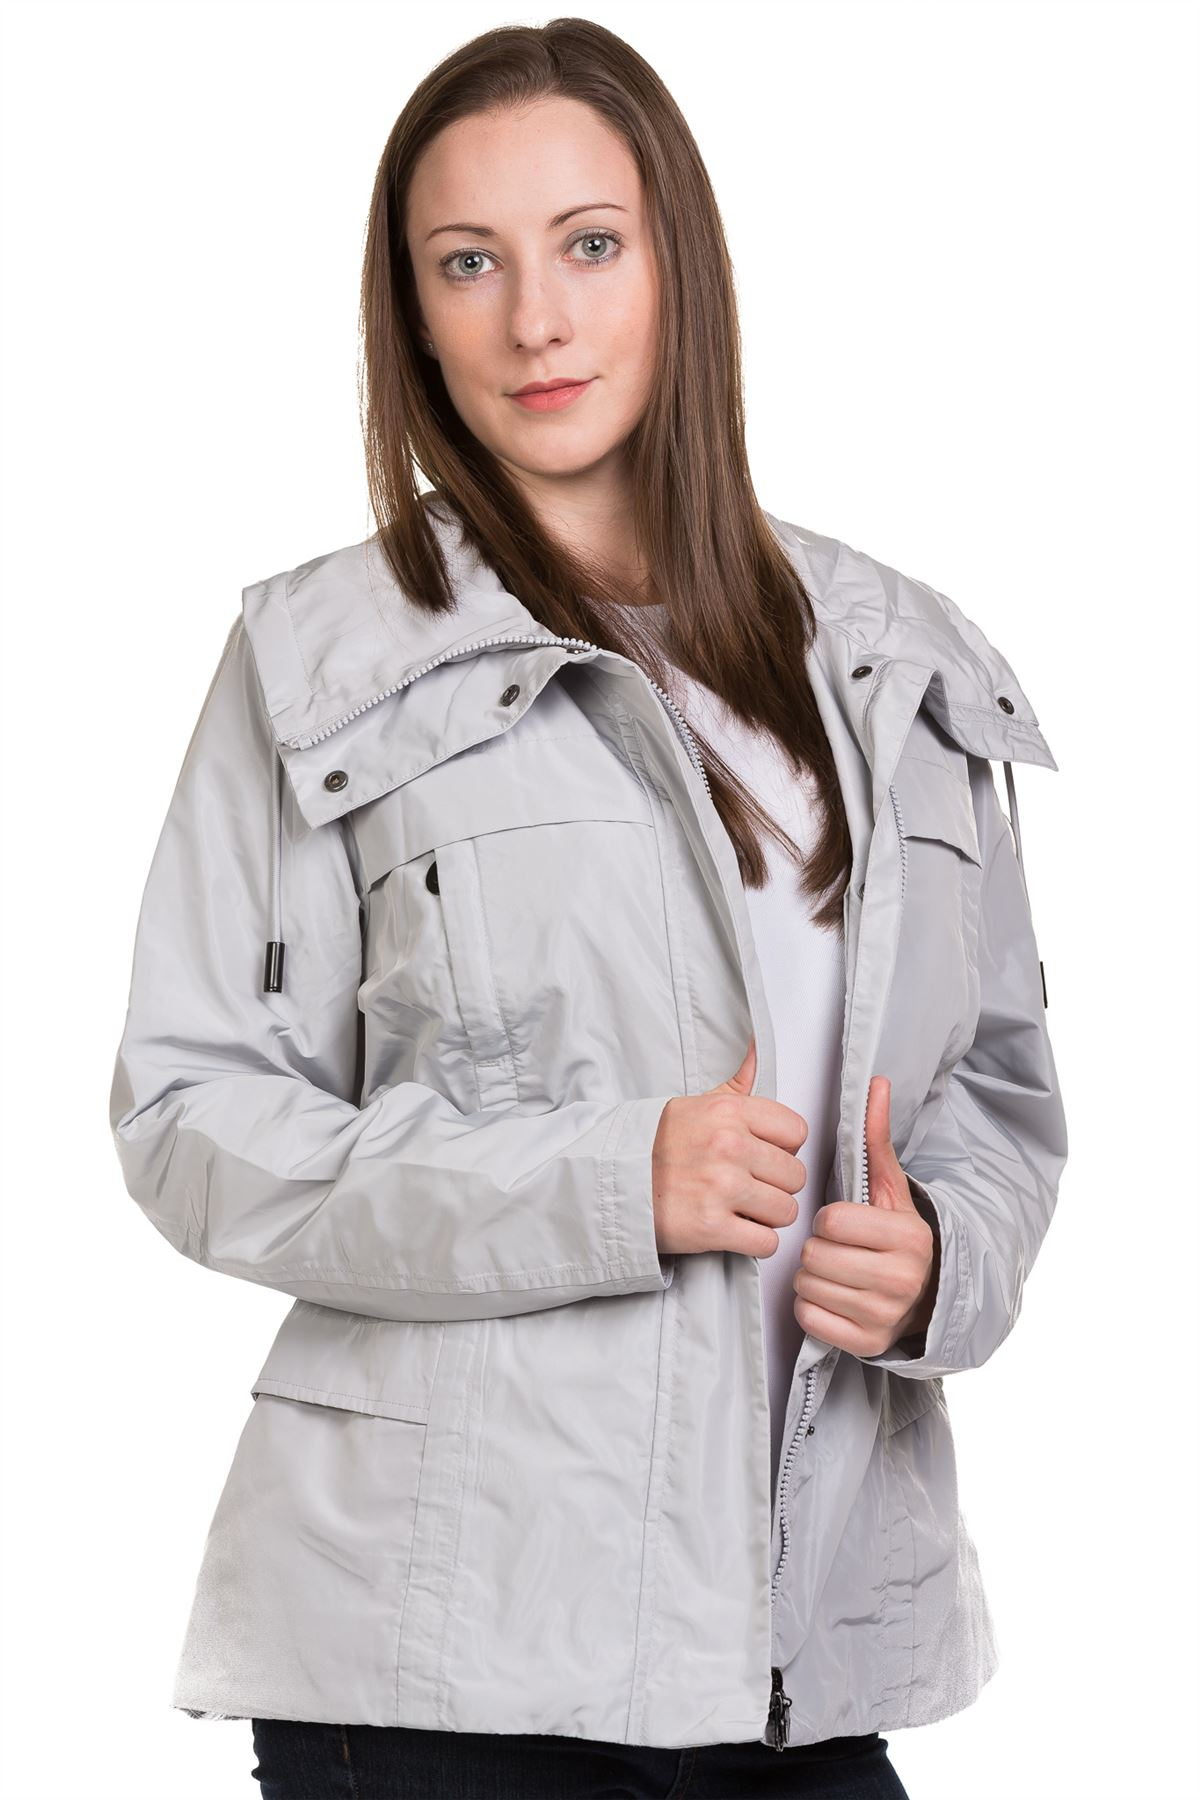 New-Ladies-casual-Jacket-Plain-Lining-Lightweight-Quality-outwear-Coat-8-16 thumbnail 8